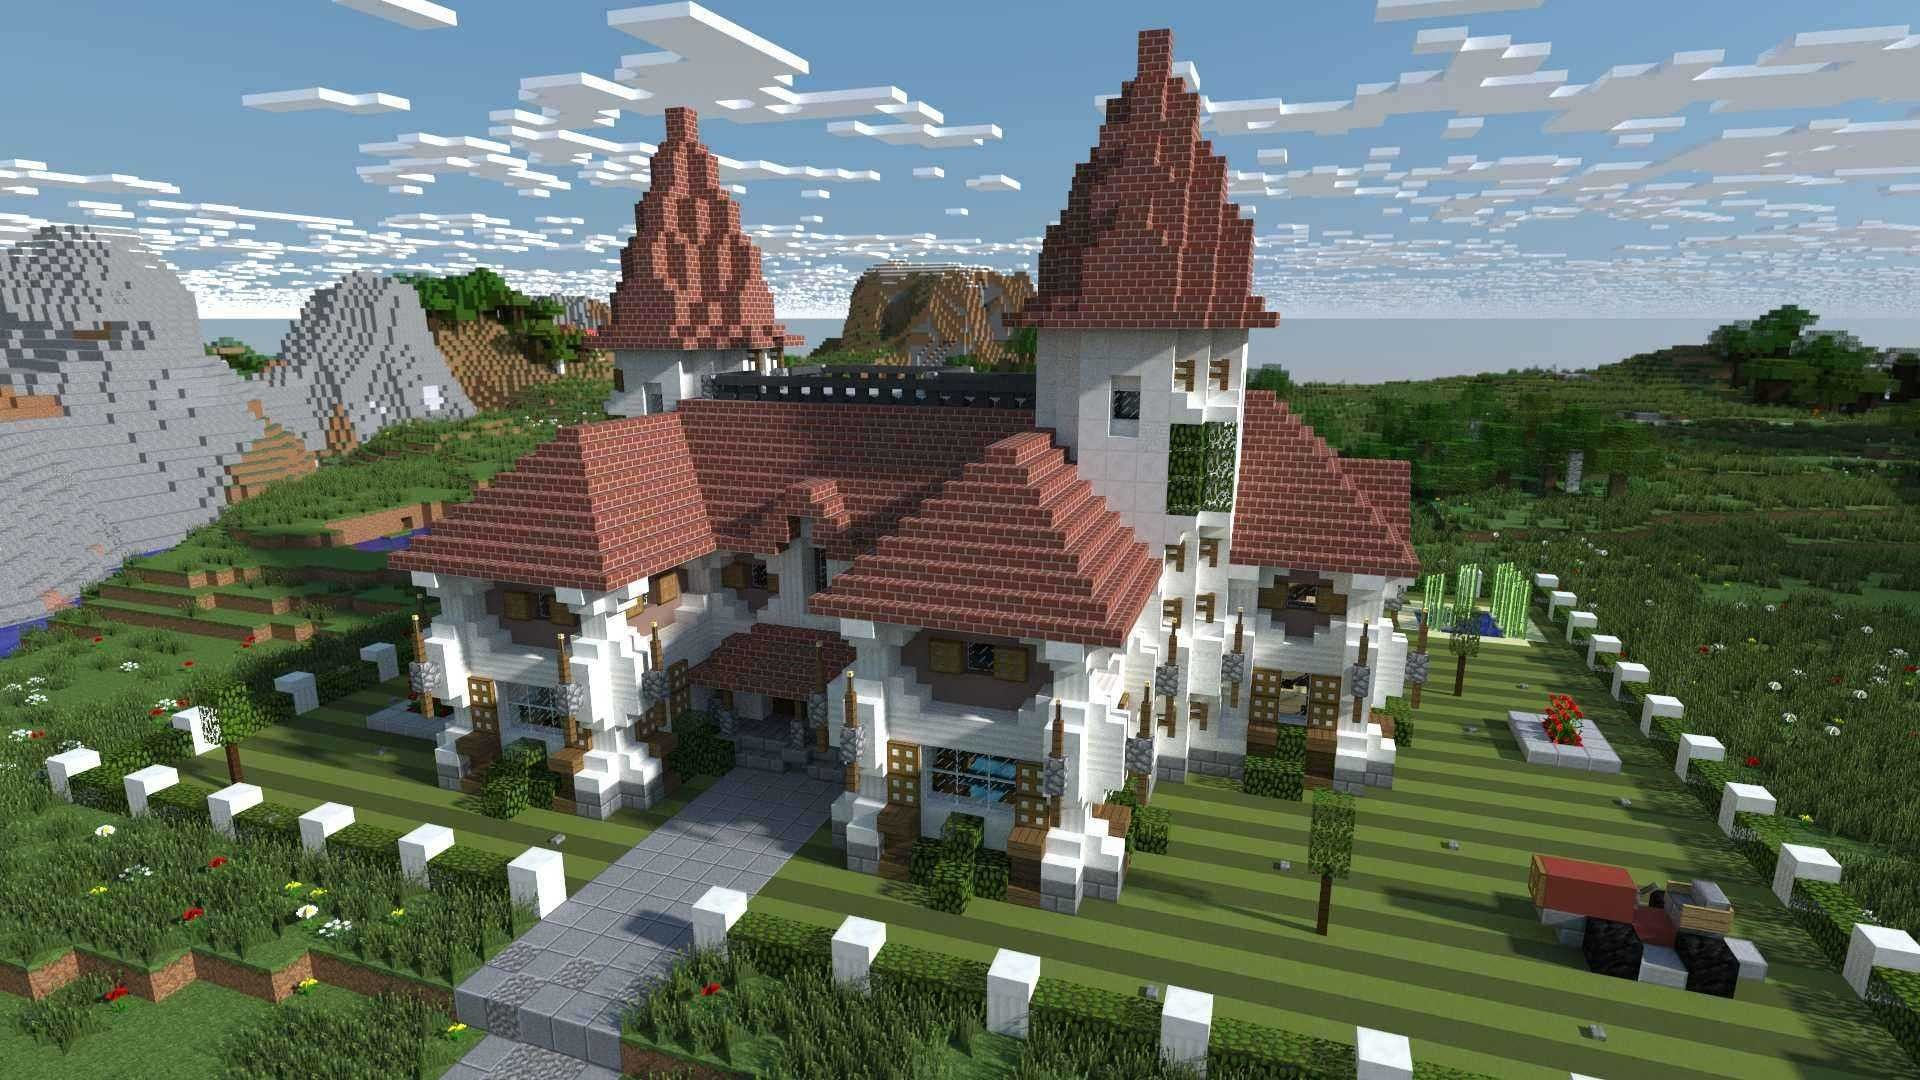 Pin By Chelsea Runyan On Minecraft  With Images